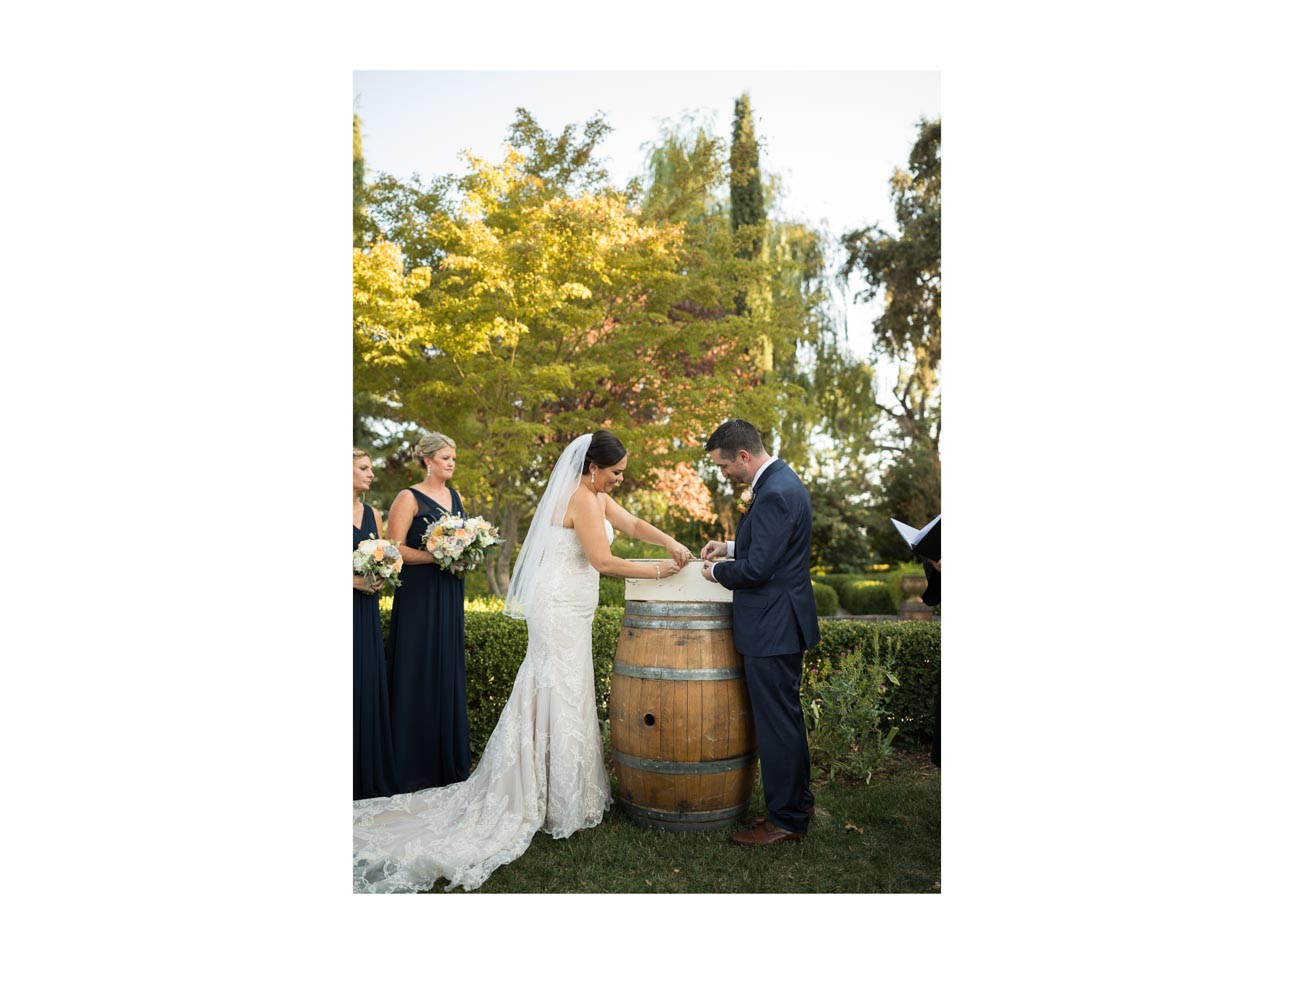 Bride and groom locking white box, which is sitting on wine barrel in garden setting